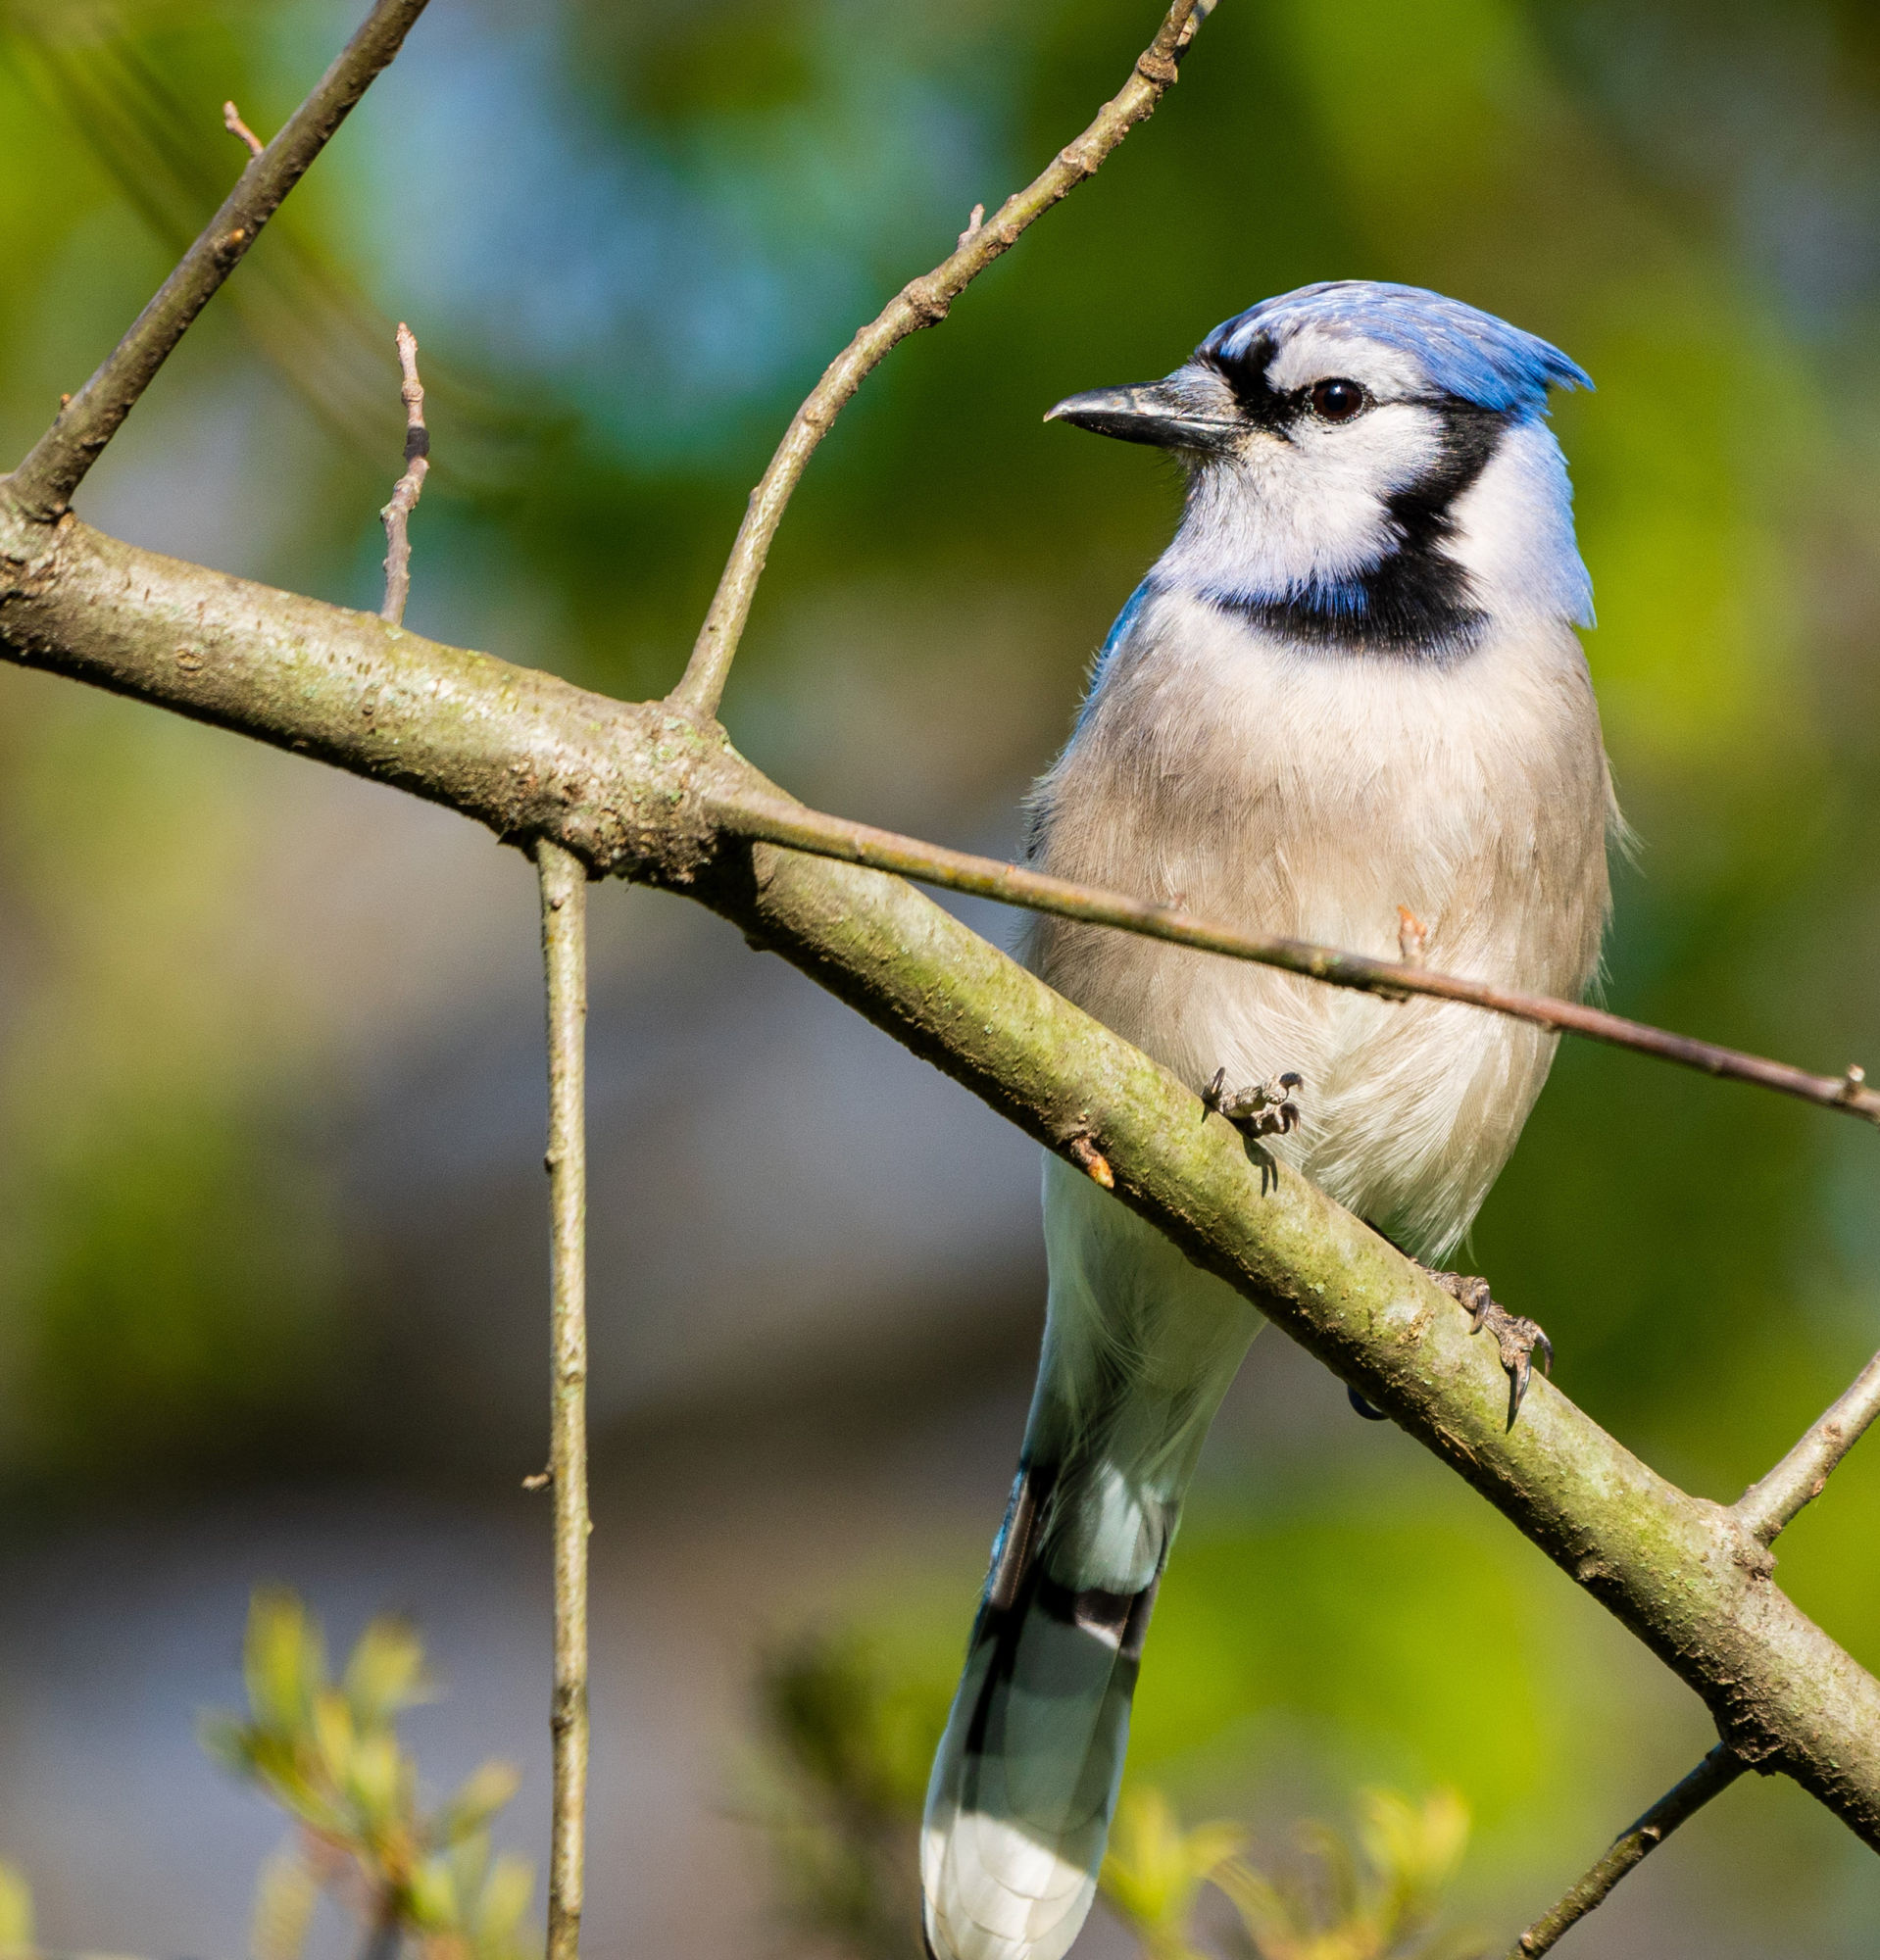 A blue jay rests on a tree branch